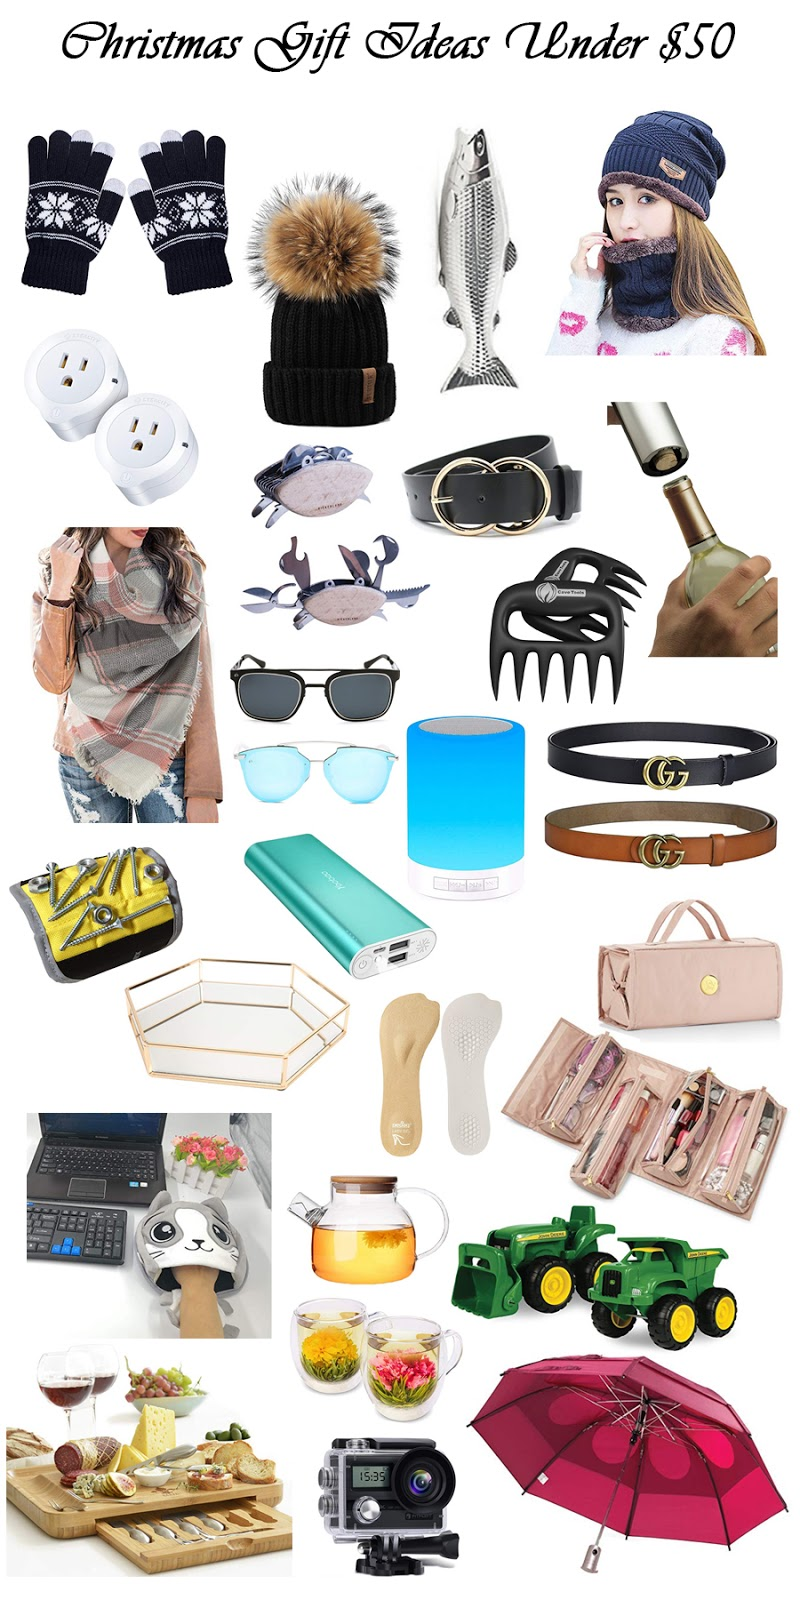 2018 Gift Ideas: Gifts Under $50 :: Effortlessly with Roxy